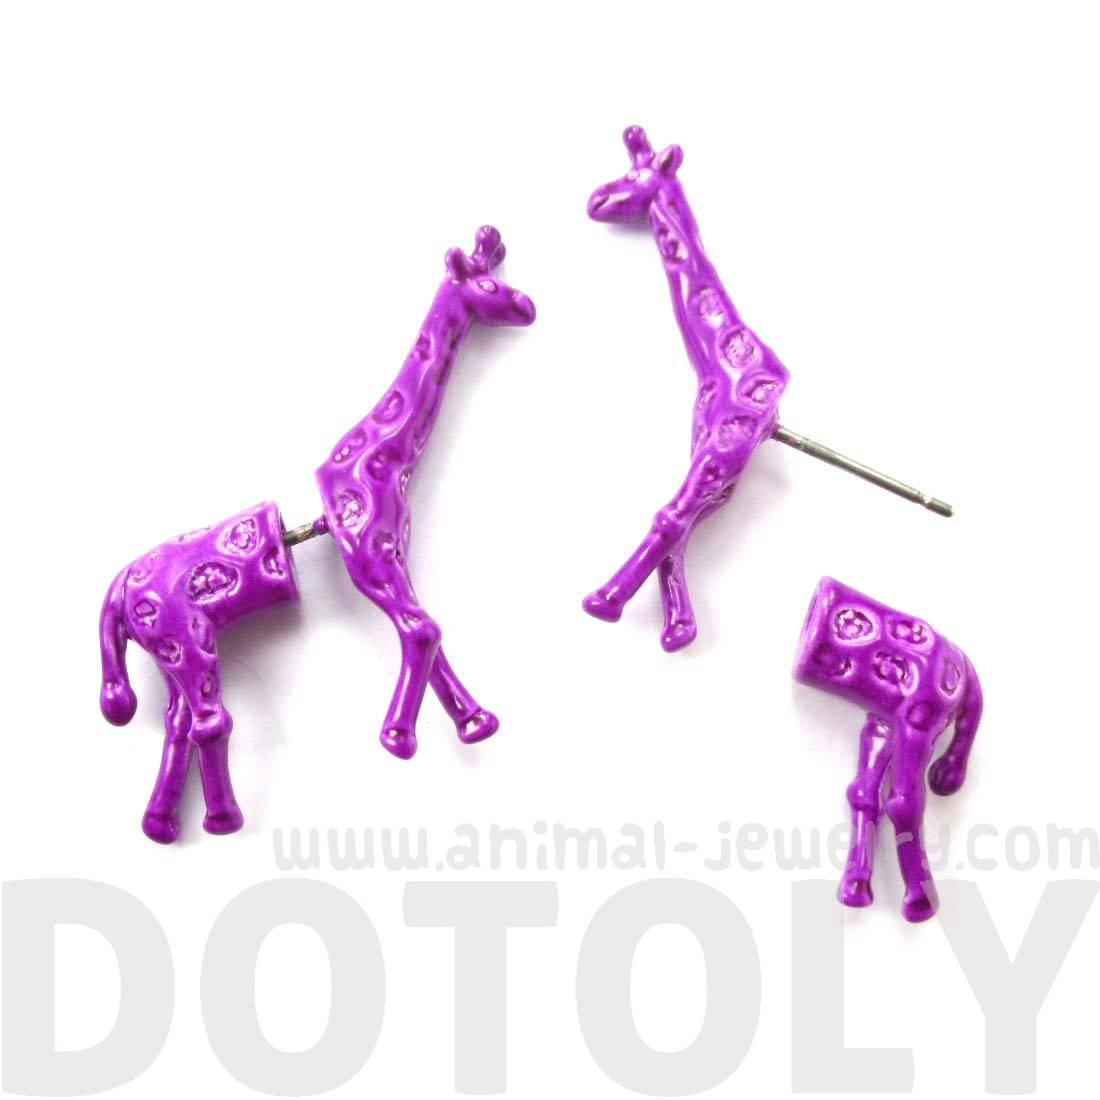 Realistic Giraffe Shaped Animal Fake Gauge Stud Earrings in Purple